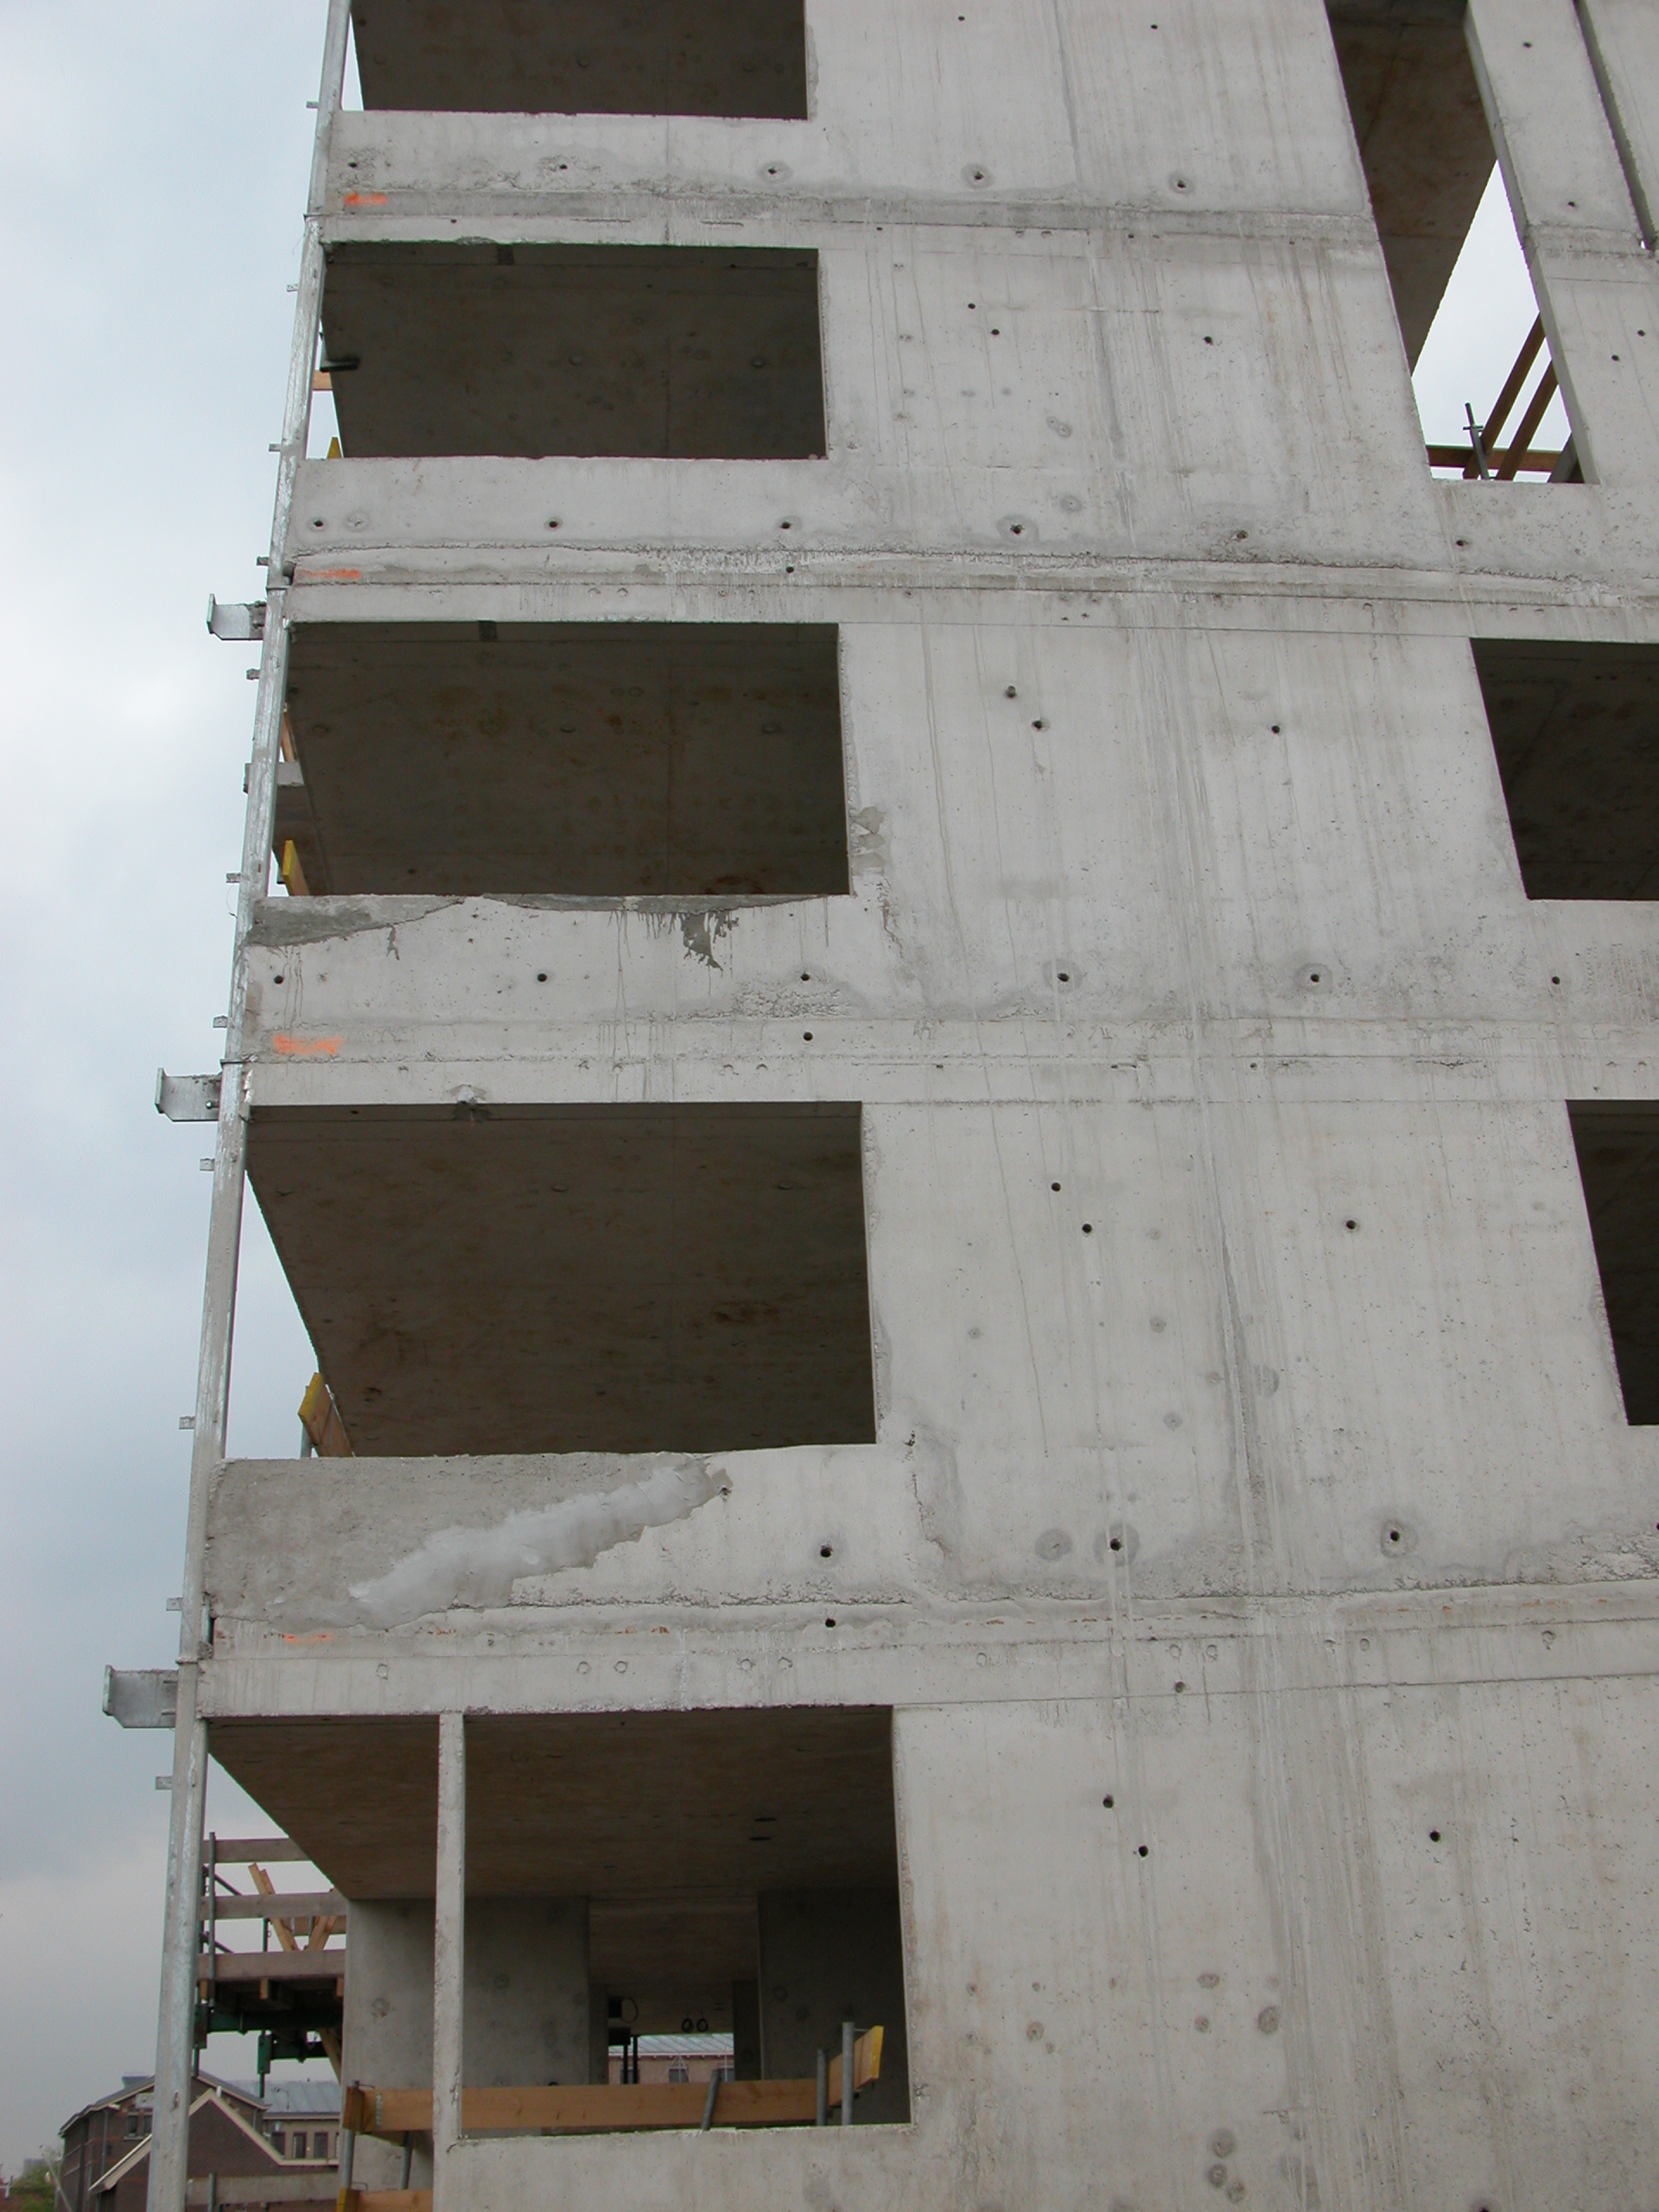 tower block of flats building under construction concrete solid grey gray